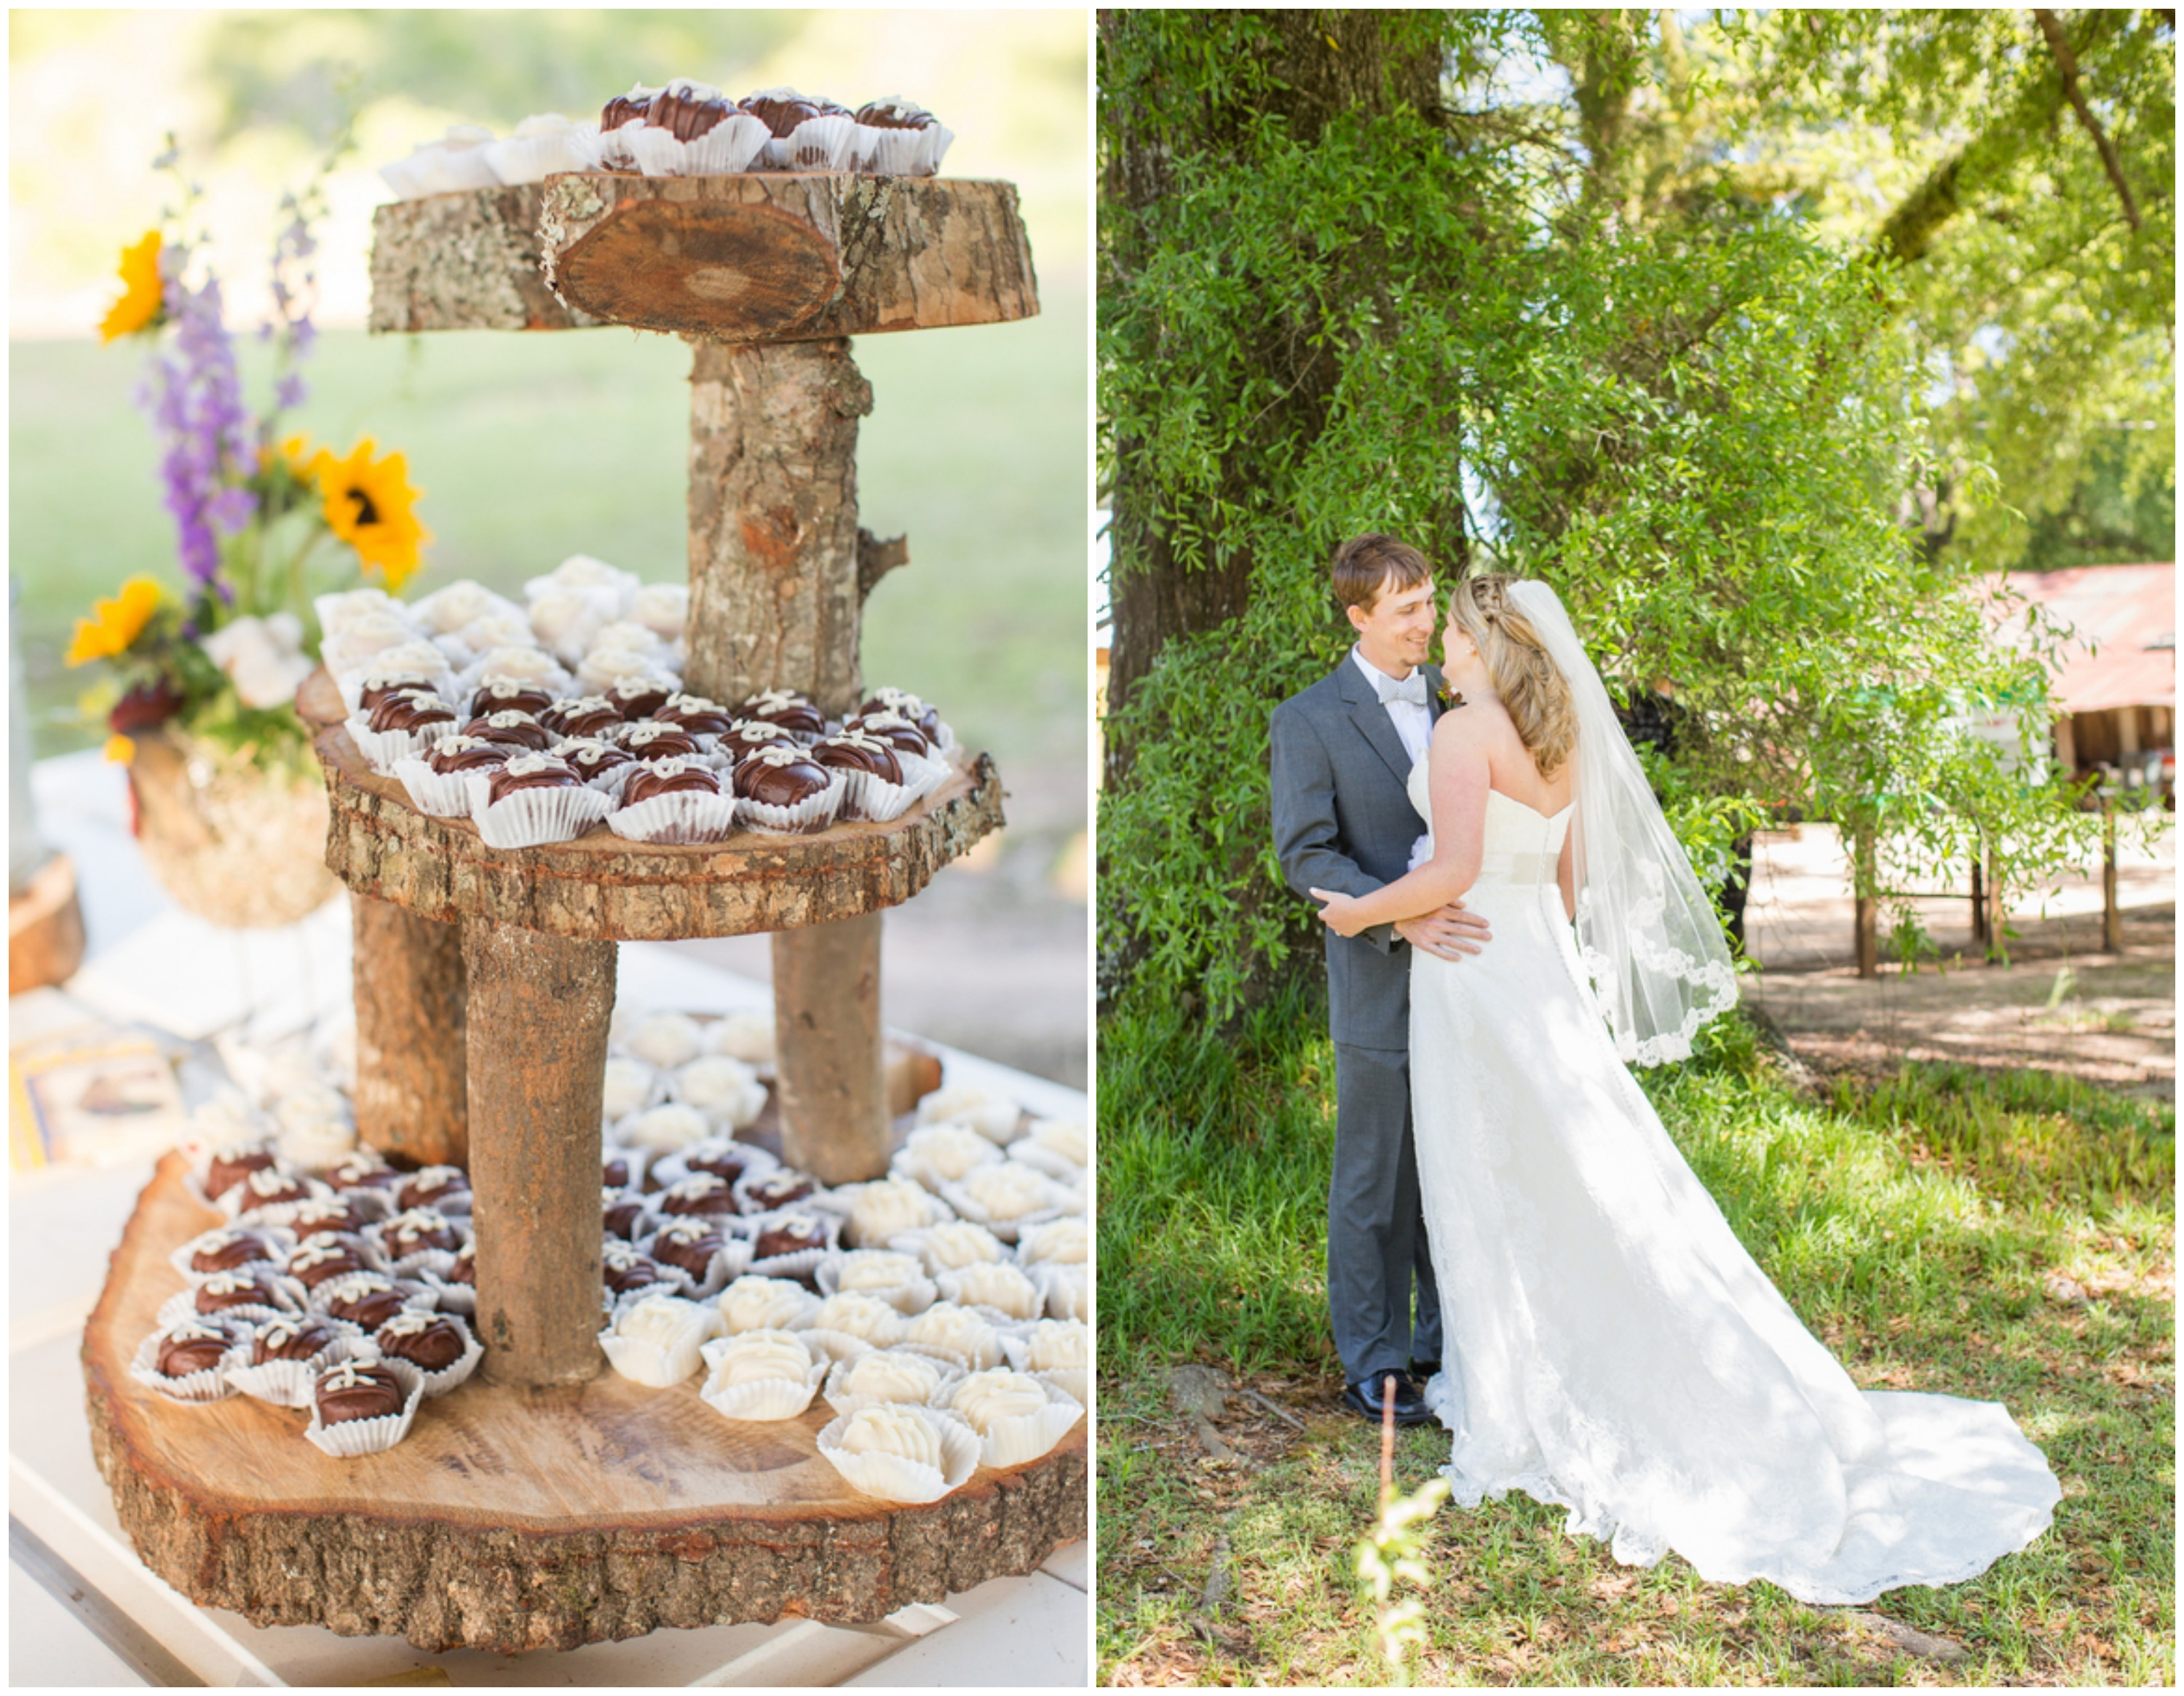 Rustic Chic Wedding Cake Ideas And Designs